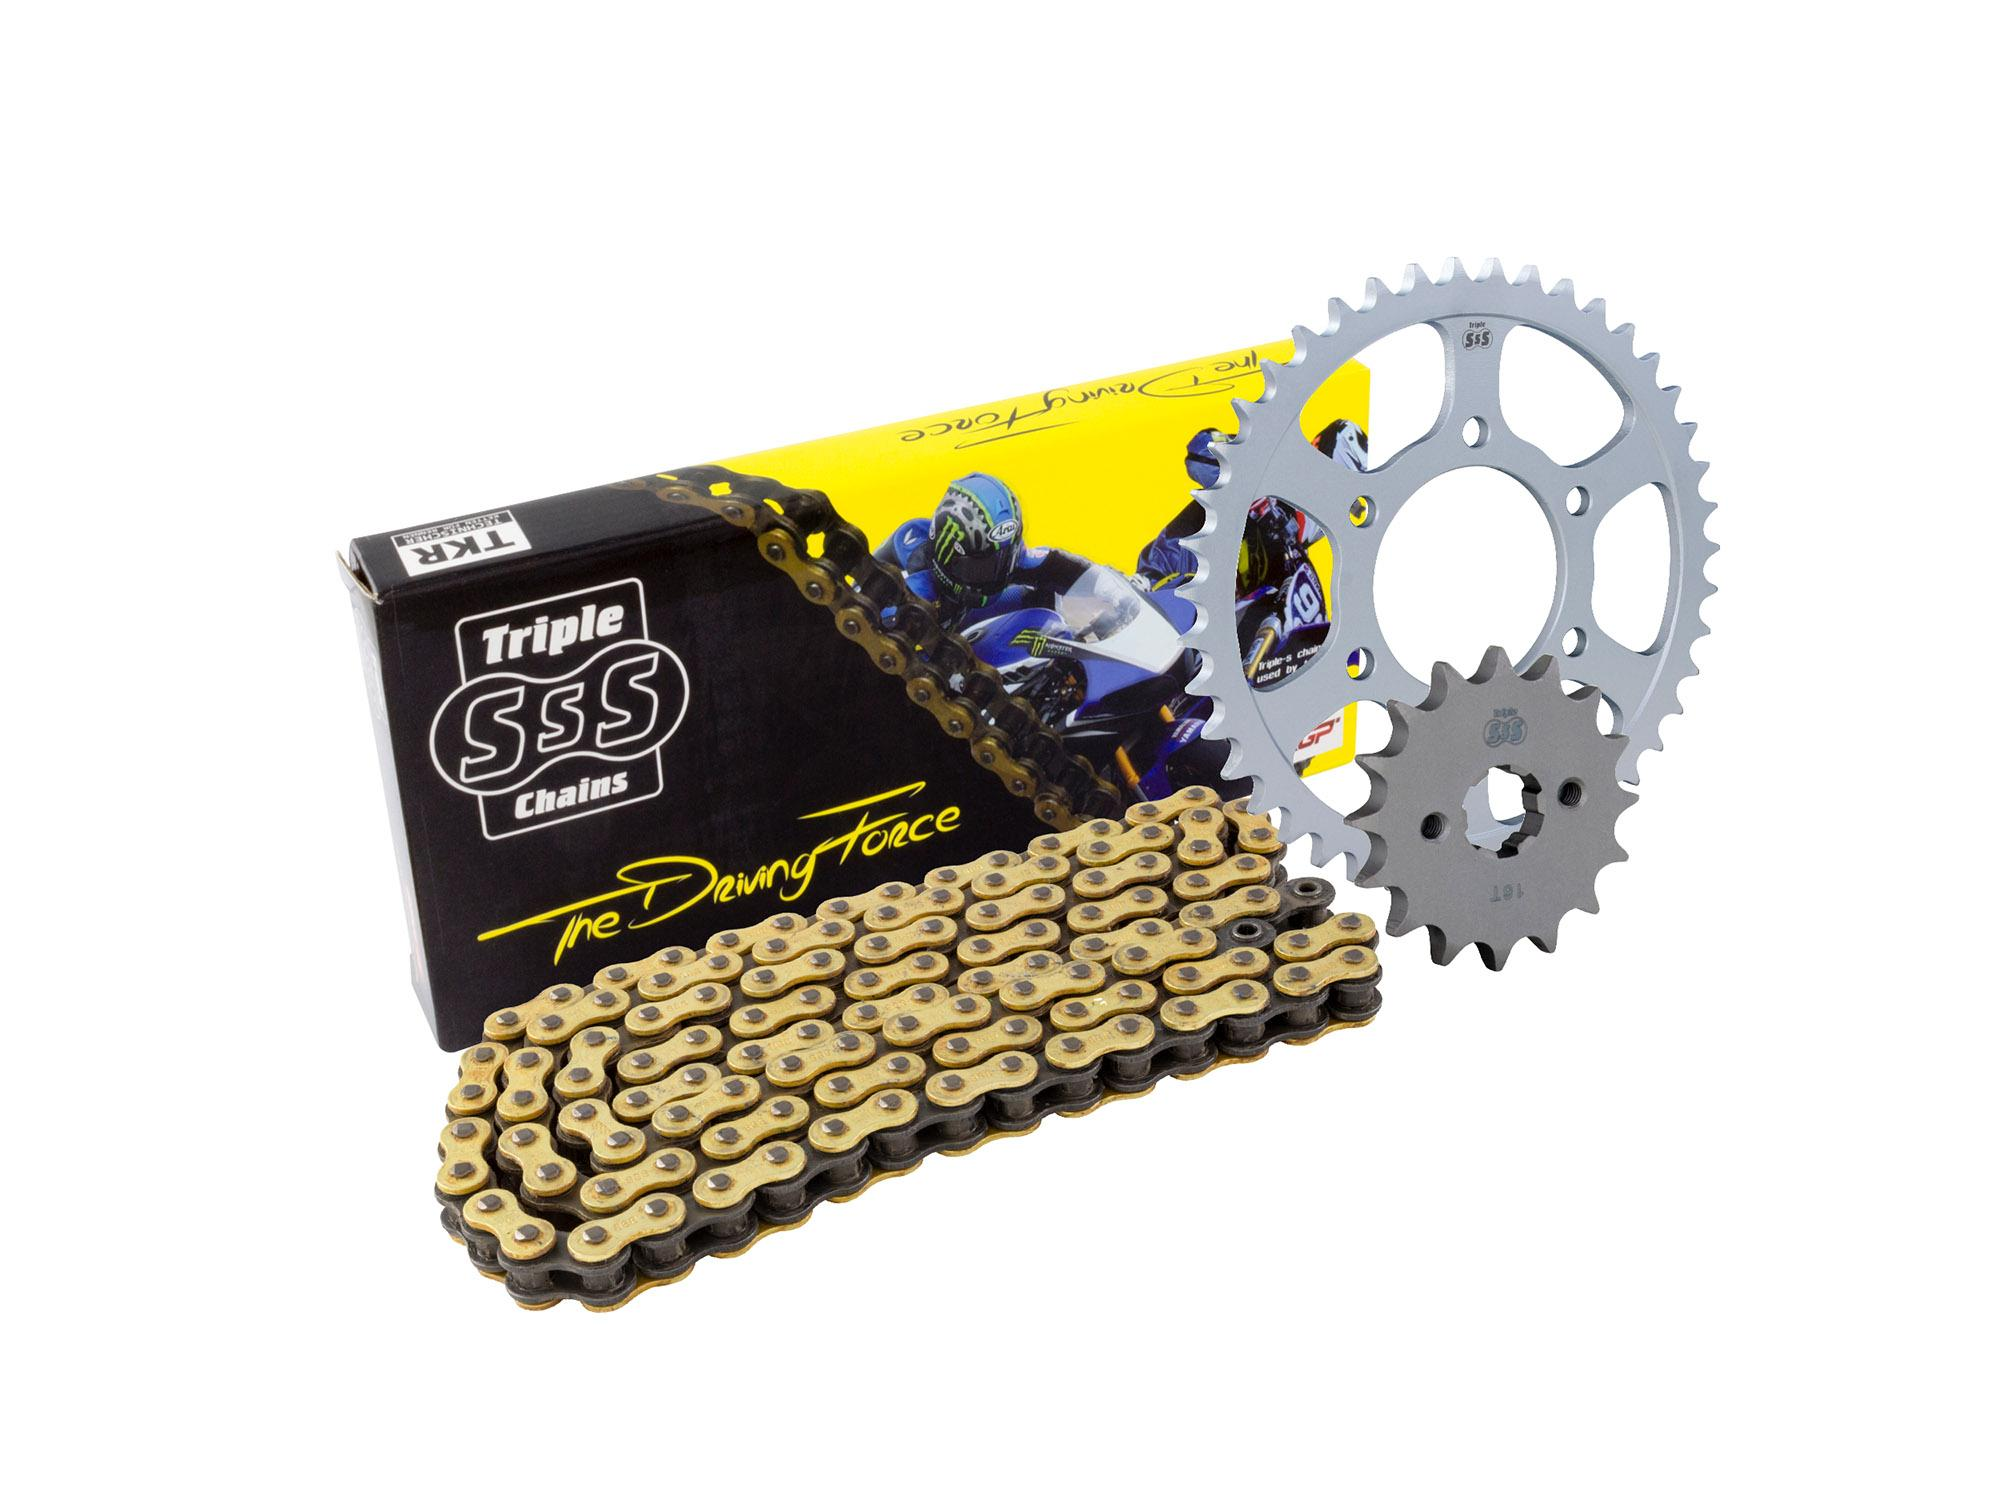 Kawasaki ZZ-R1100 D1-D5/ D8-D9 93-97/ 00-01 Chain & Sprocket Kit: 17T Front, 45T Rear, HD O-Ring Gold Chain 530H 110 Link